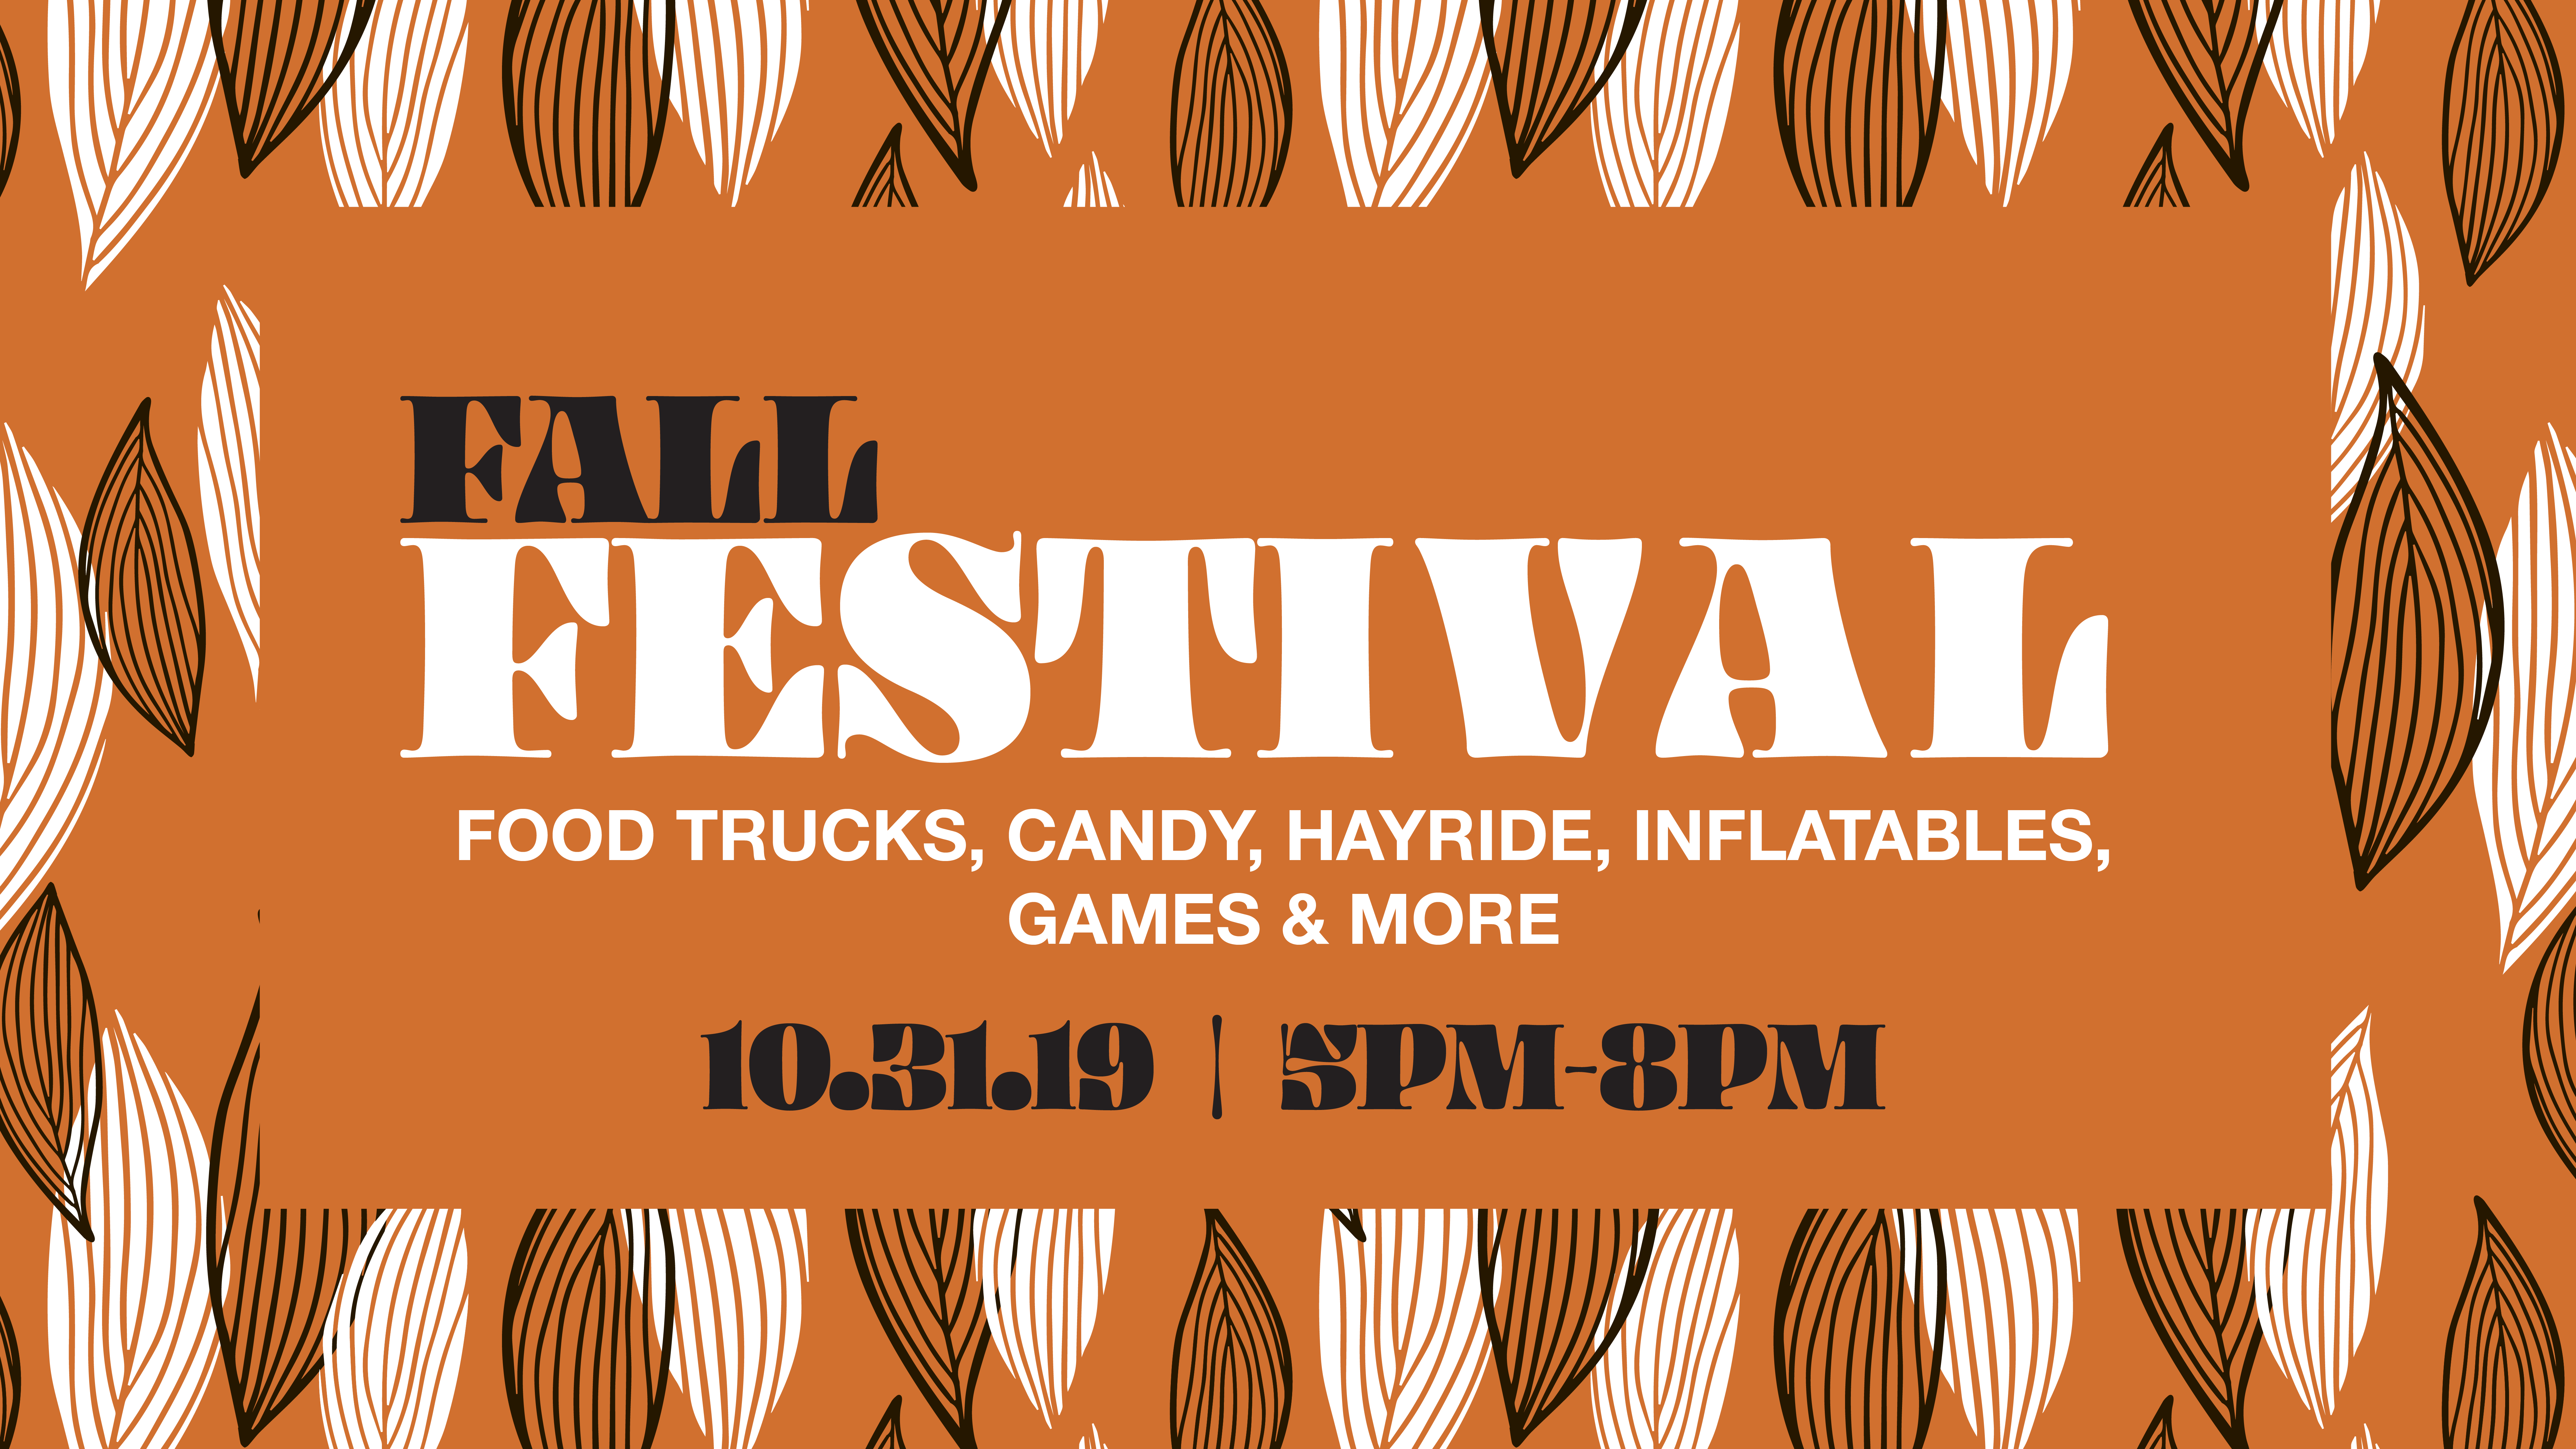 Fall Festival at the Orange County campus